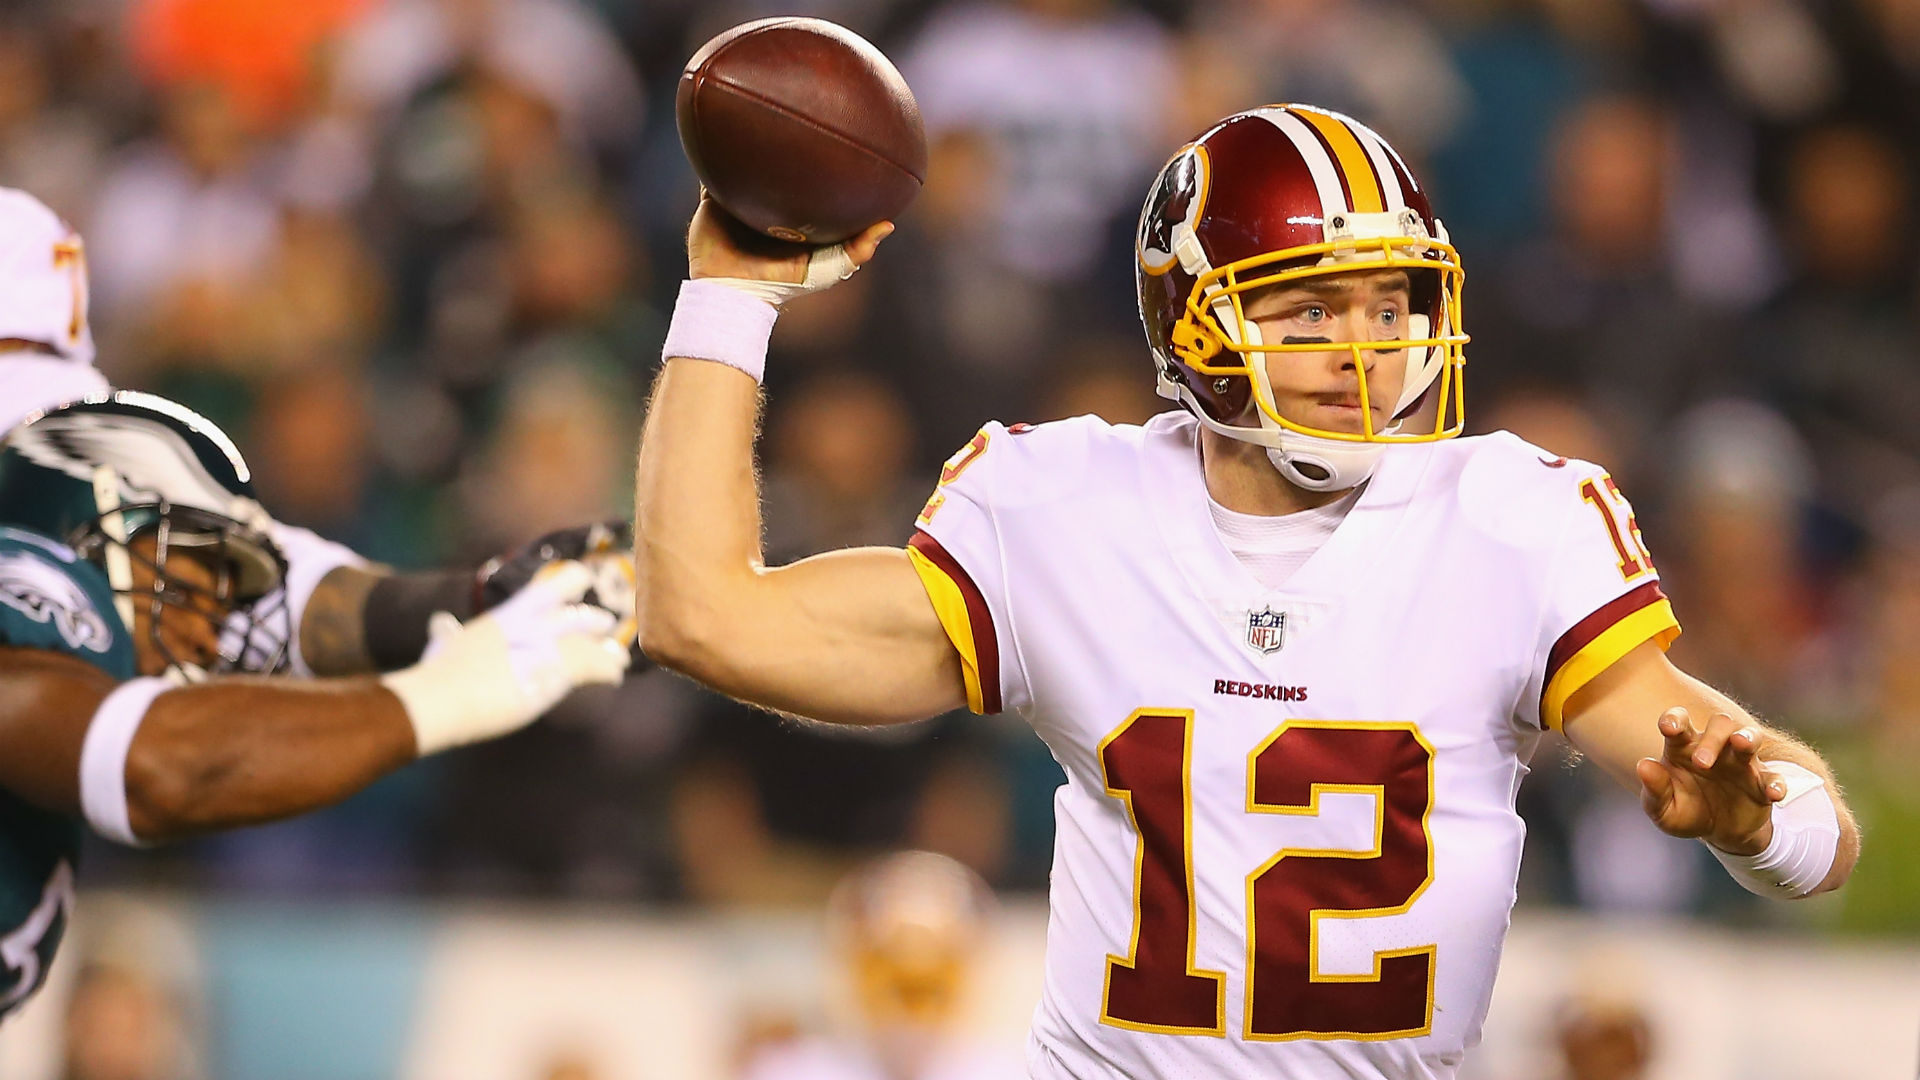 Redskins QB Colt McCoy injured, out for season